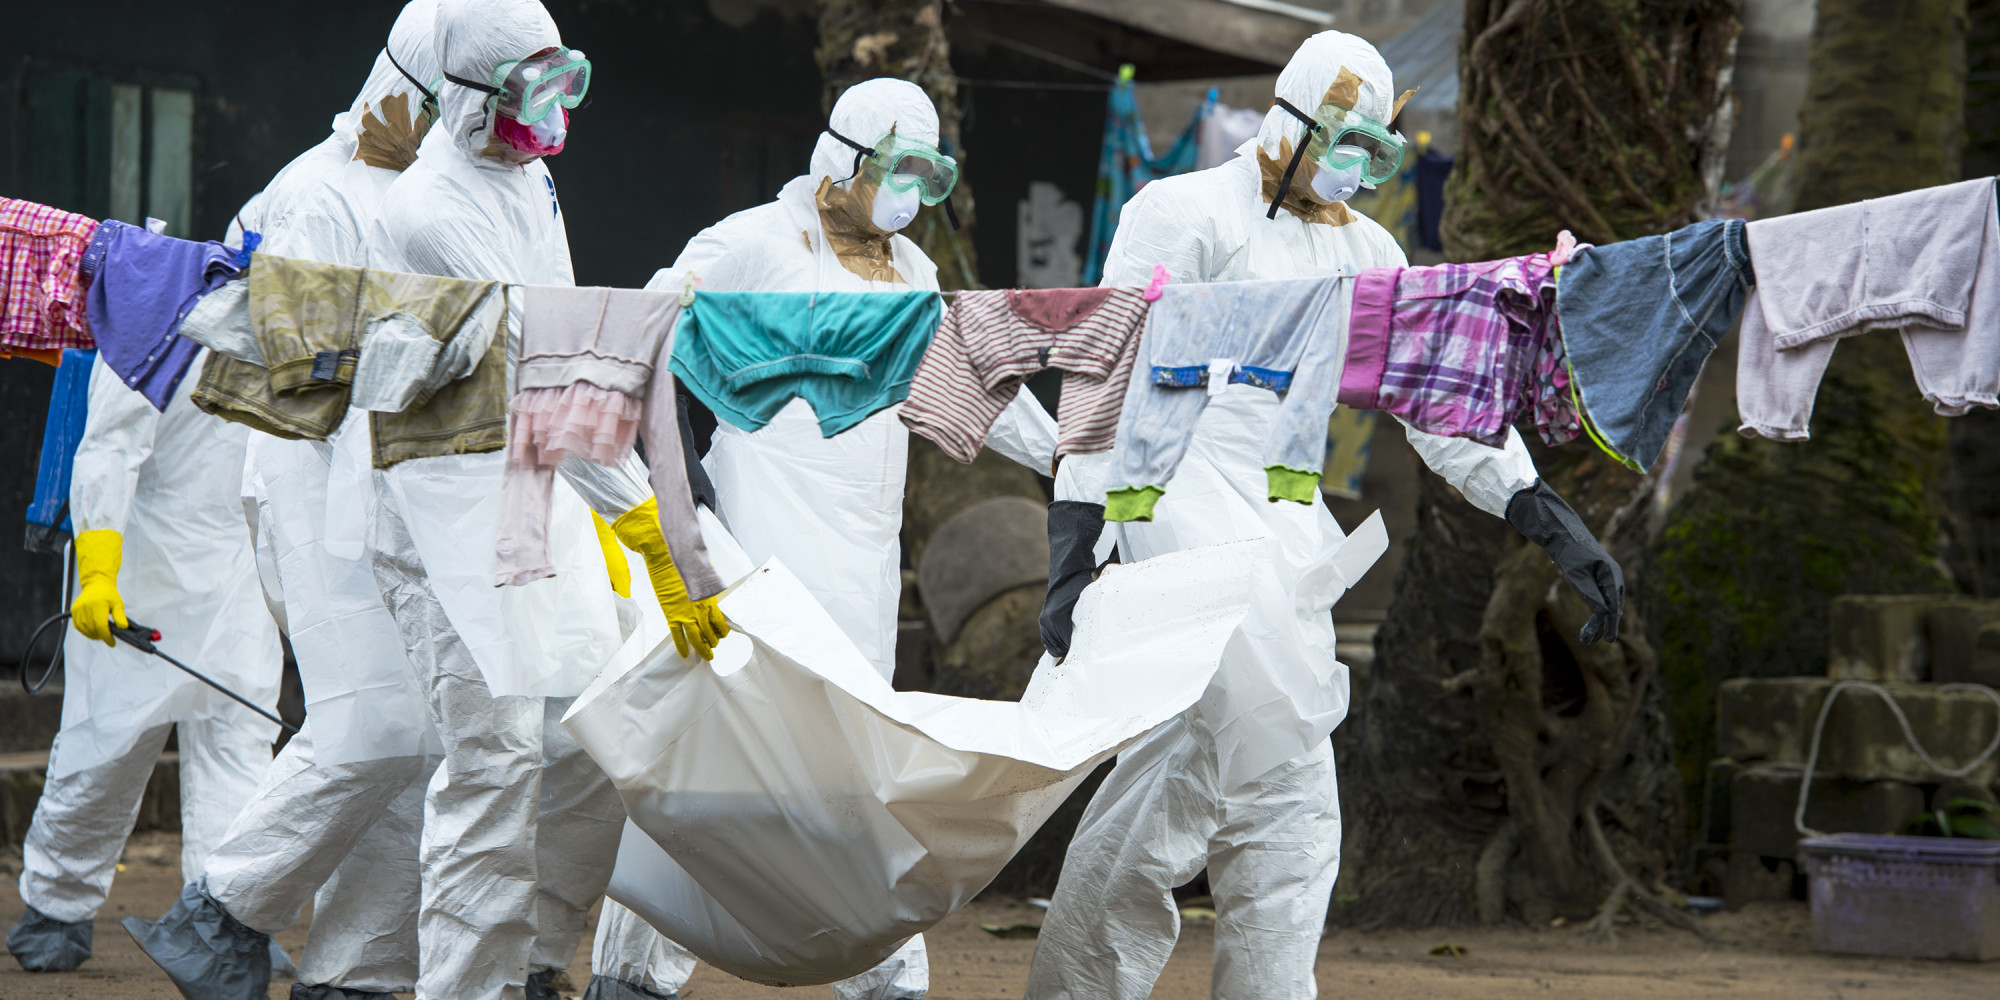 argumentive on ebola Ebola virus disease (evd) is a rare and deadly disease in people and nonhuman primates the viruses that cause evd are located mainly in sub-saharan africa people can get evd through direct contact with an infected animal (bat or nonhuman primate) or a sick or dead person infected with ebola virus.